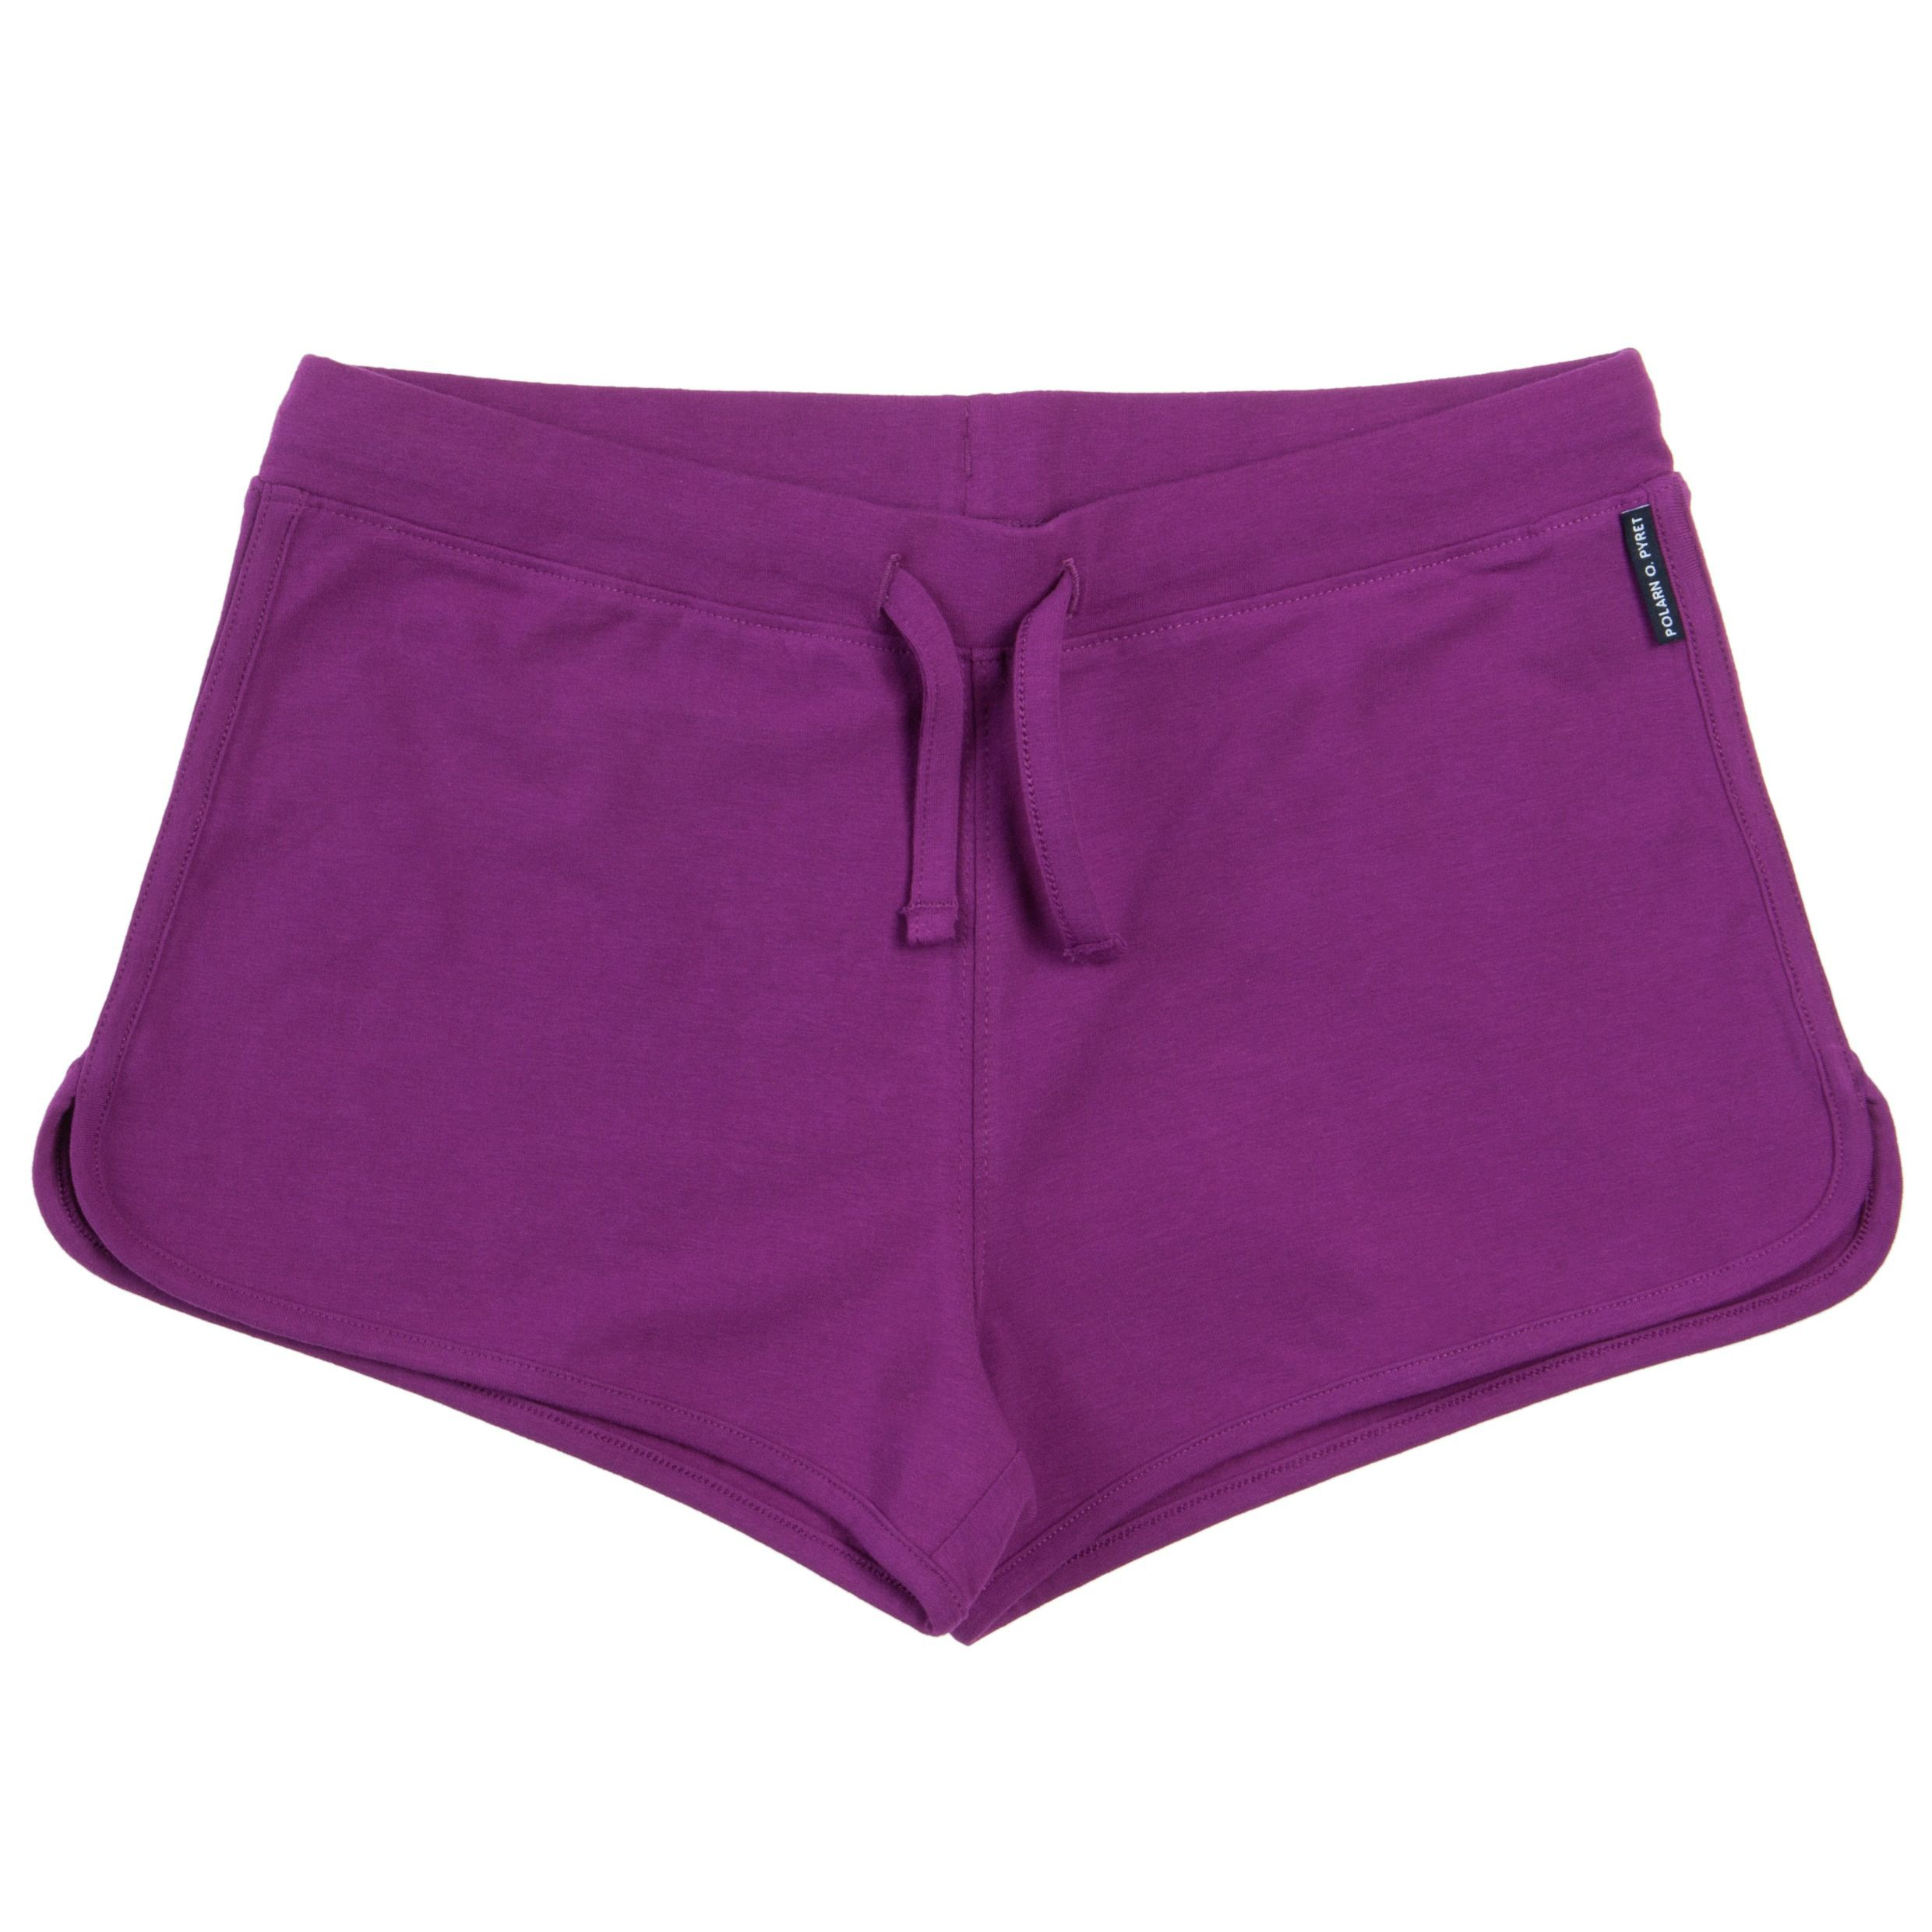 Girls plain purple shorts